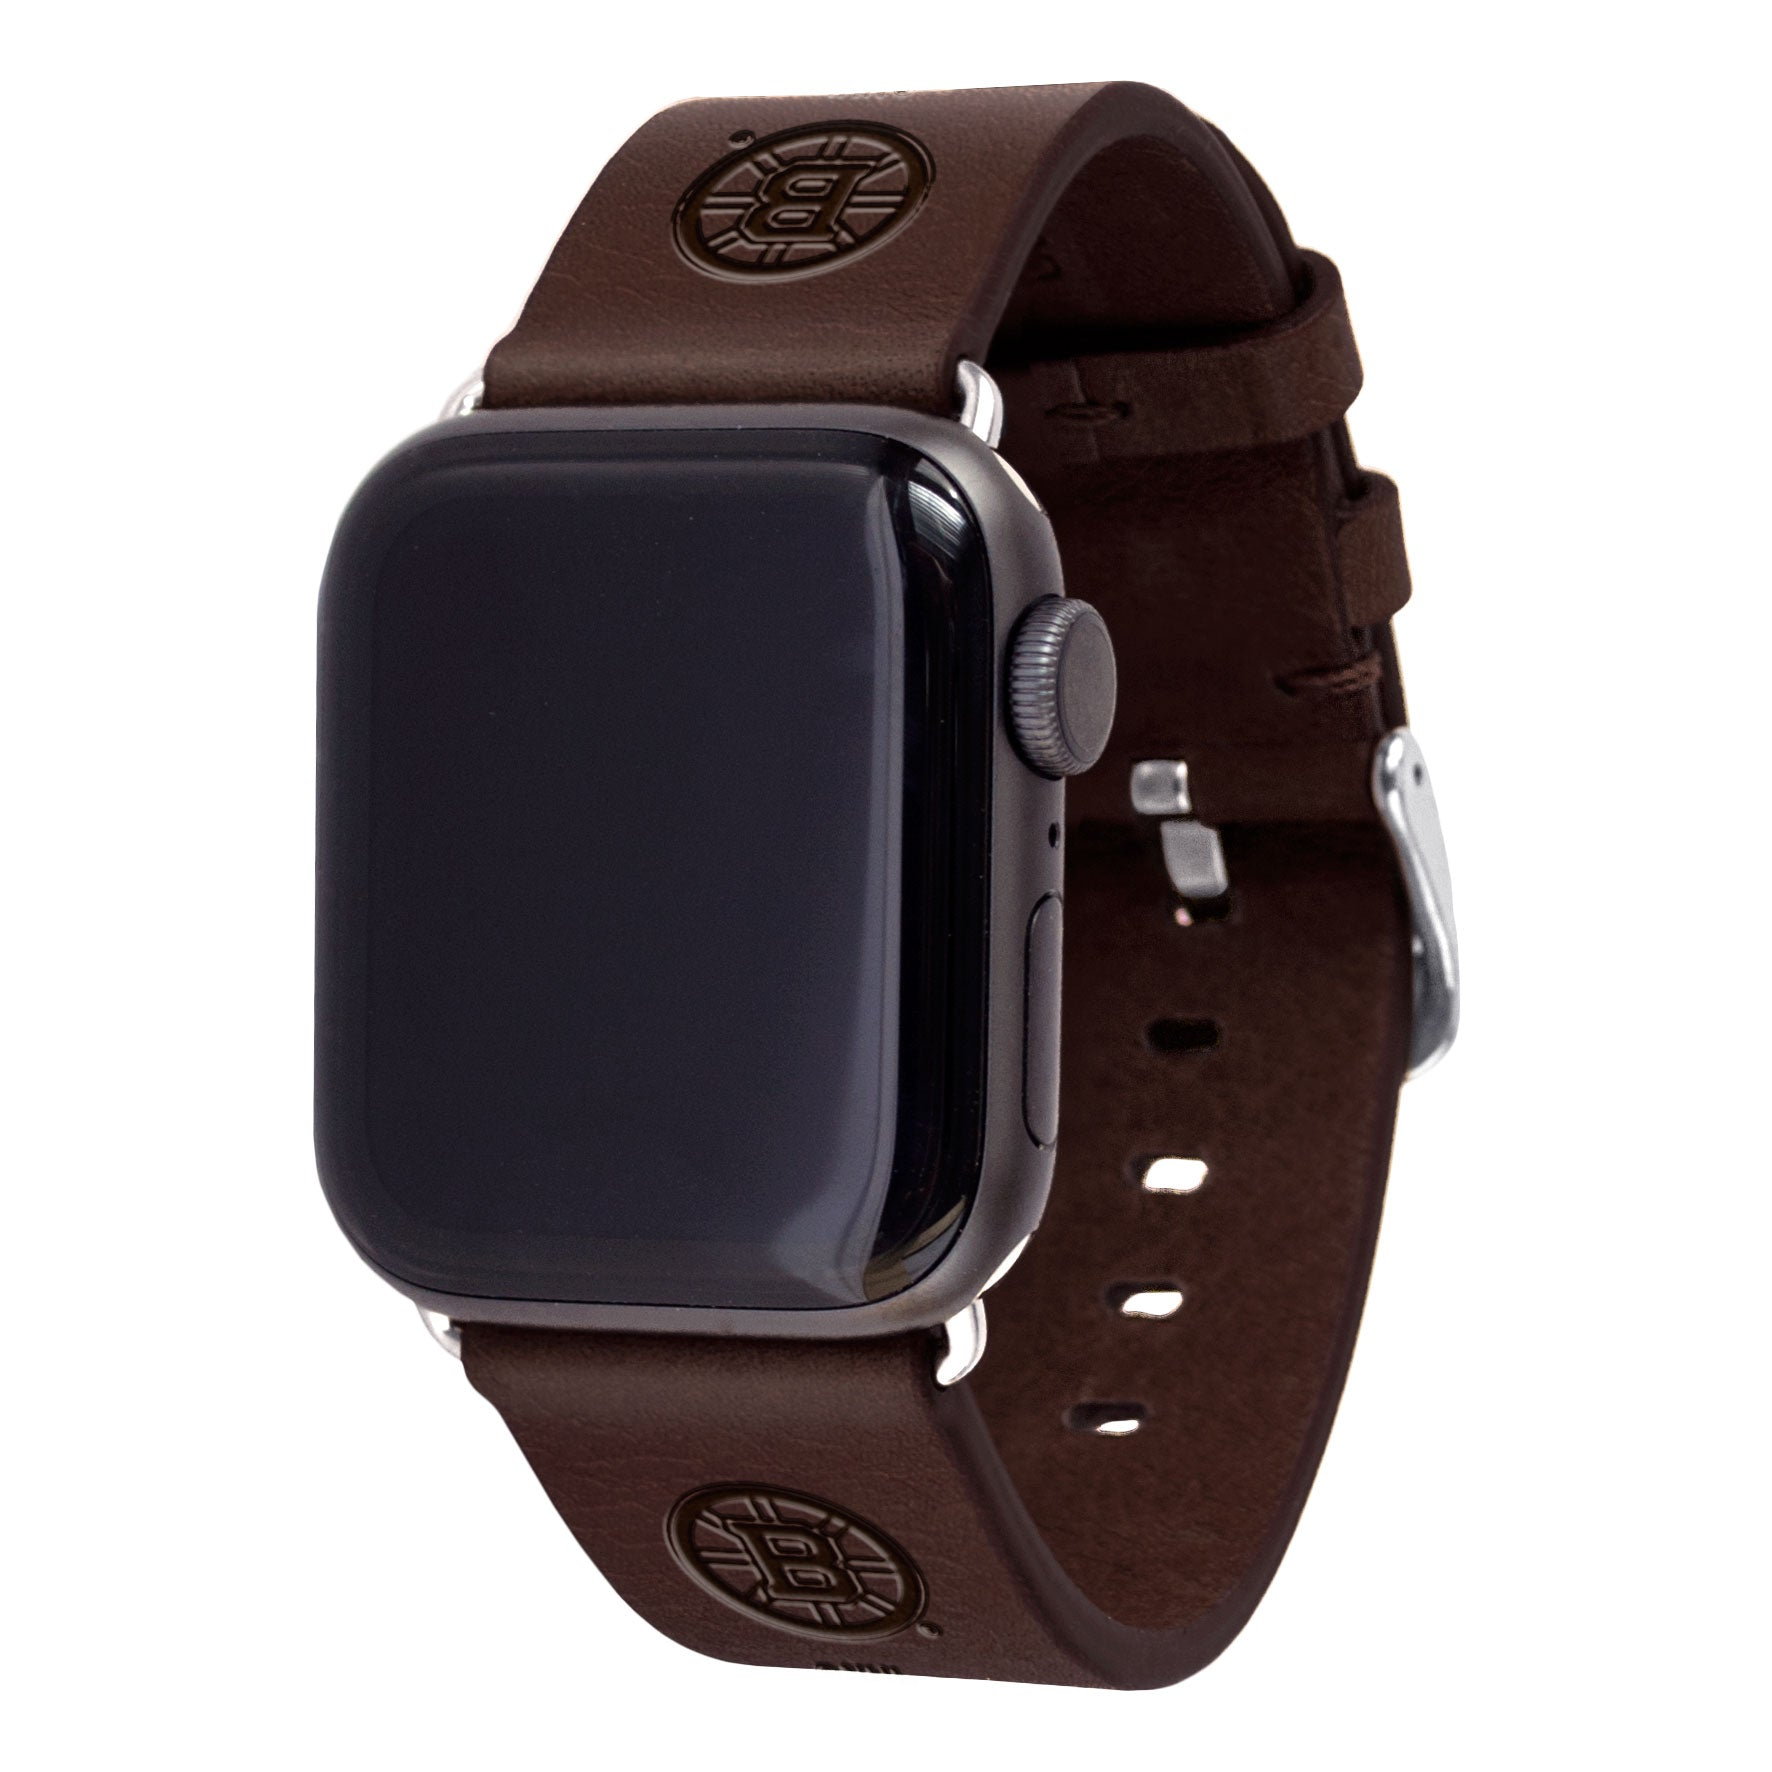 Boston Bruins Leather Apple Watch Band-AffinityBands